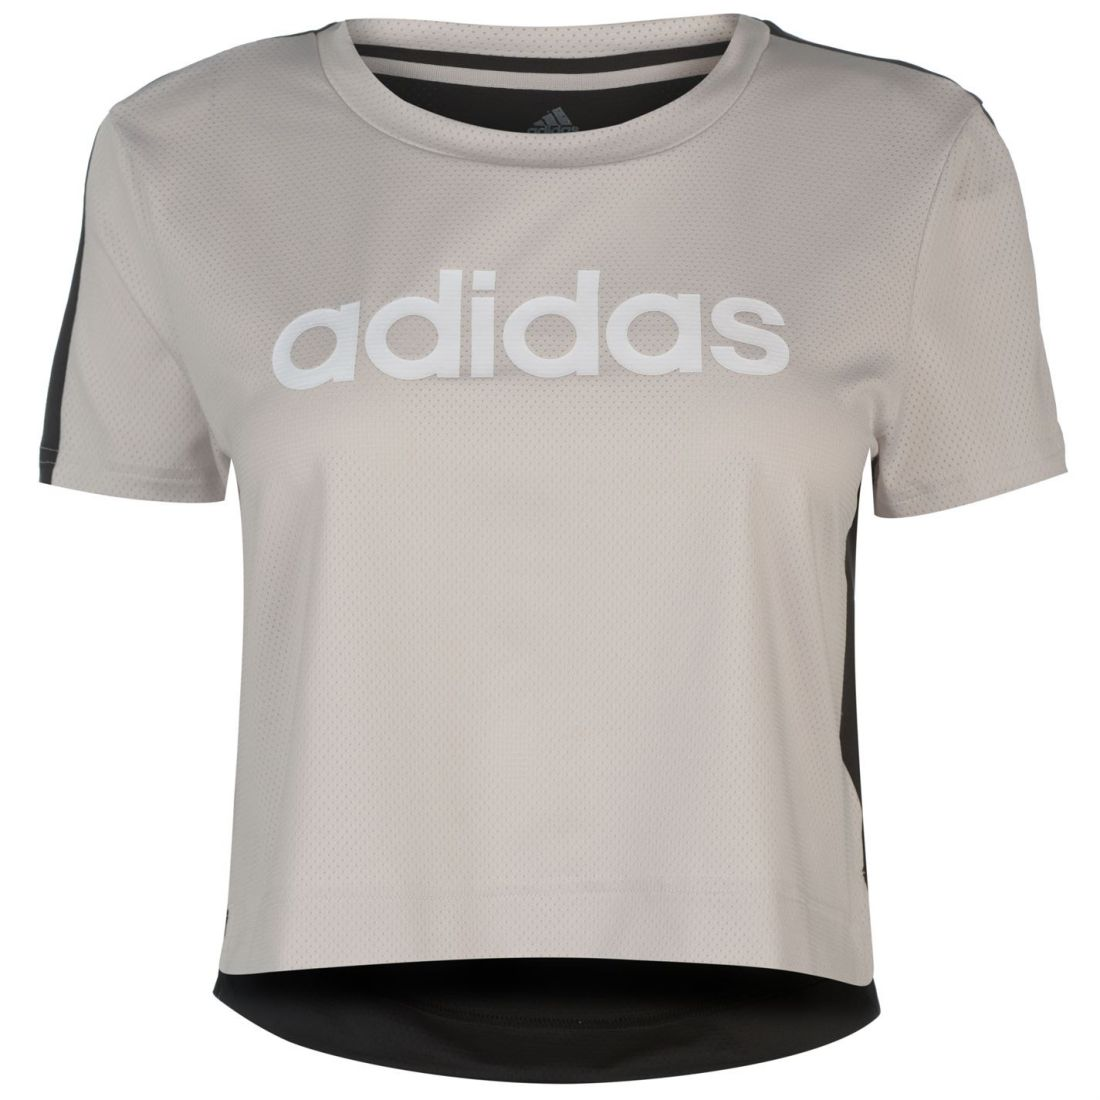 c16f9a87 adidas Womens Linear Crop T Shirt Short Sleeve Performance Tee Top Mesh  Stretch